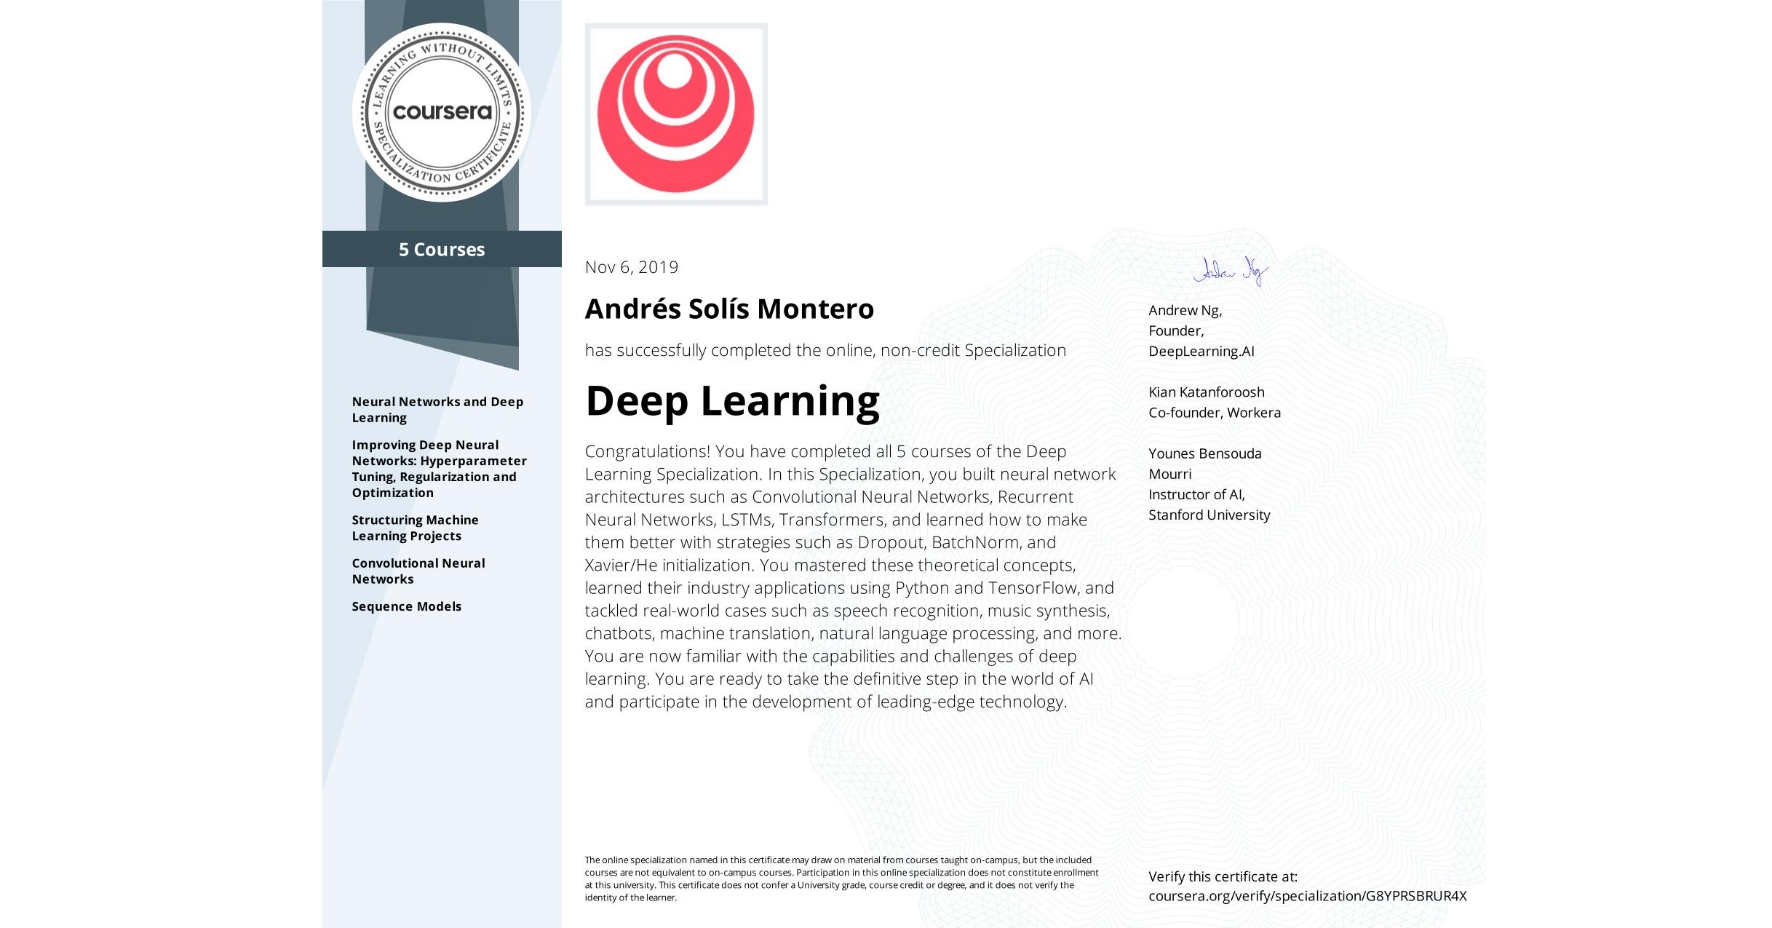 View certificate for Andrés Solís Montero, Deep Learning, offered through Coursera. The Deep Learning Specialization is designed to prepare learners to participate in the development of cutting-edge AI technology, and to understand the capability, the challenges, and the consequences of the rise of deep learning. Through five interconnected courses, learners develop a profound knowledge of the hottest AI algorithms, mastering deep learning from its foundations (neural networks) to its industry applications (Computer Vision, Natural Language Processing, Speech Recognition, etc.).